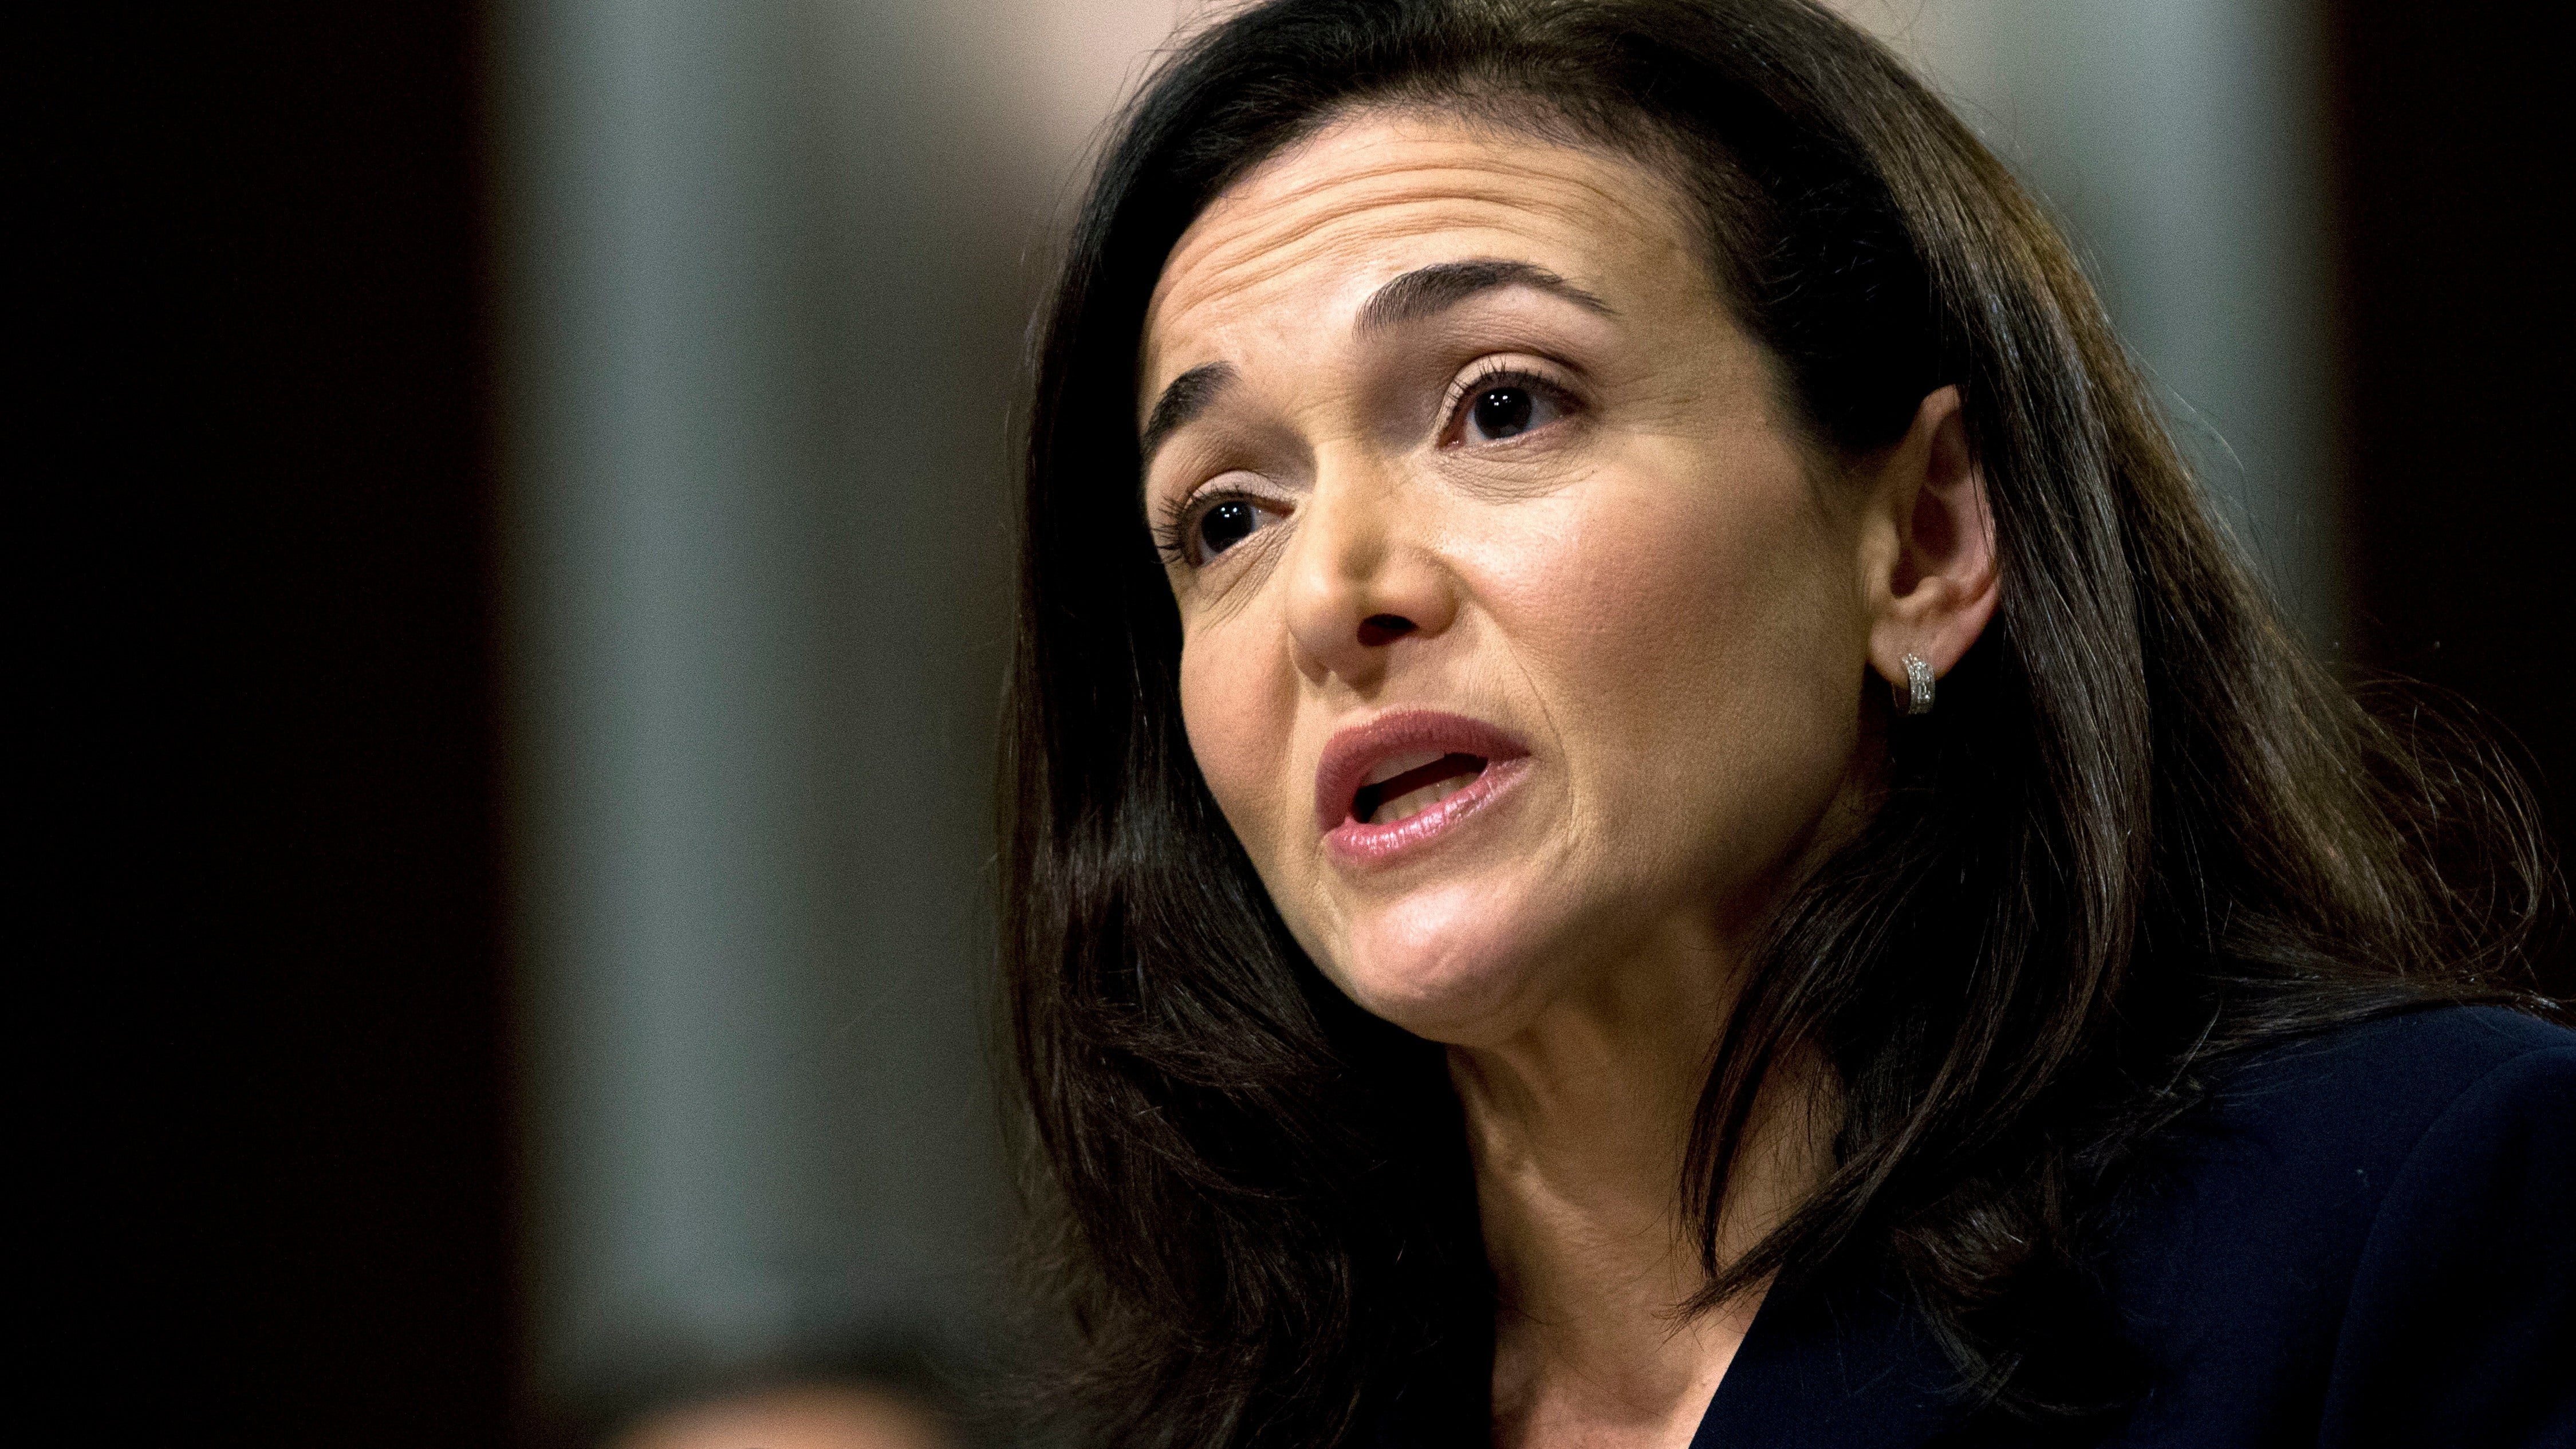 Facebook's Sheryl Sandberg Directly Requested Information On George Soros: Report